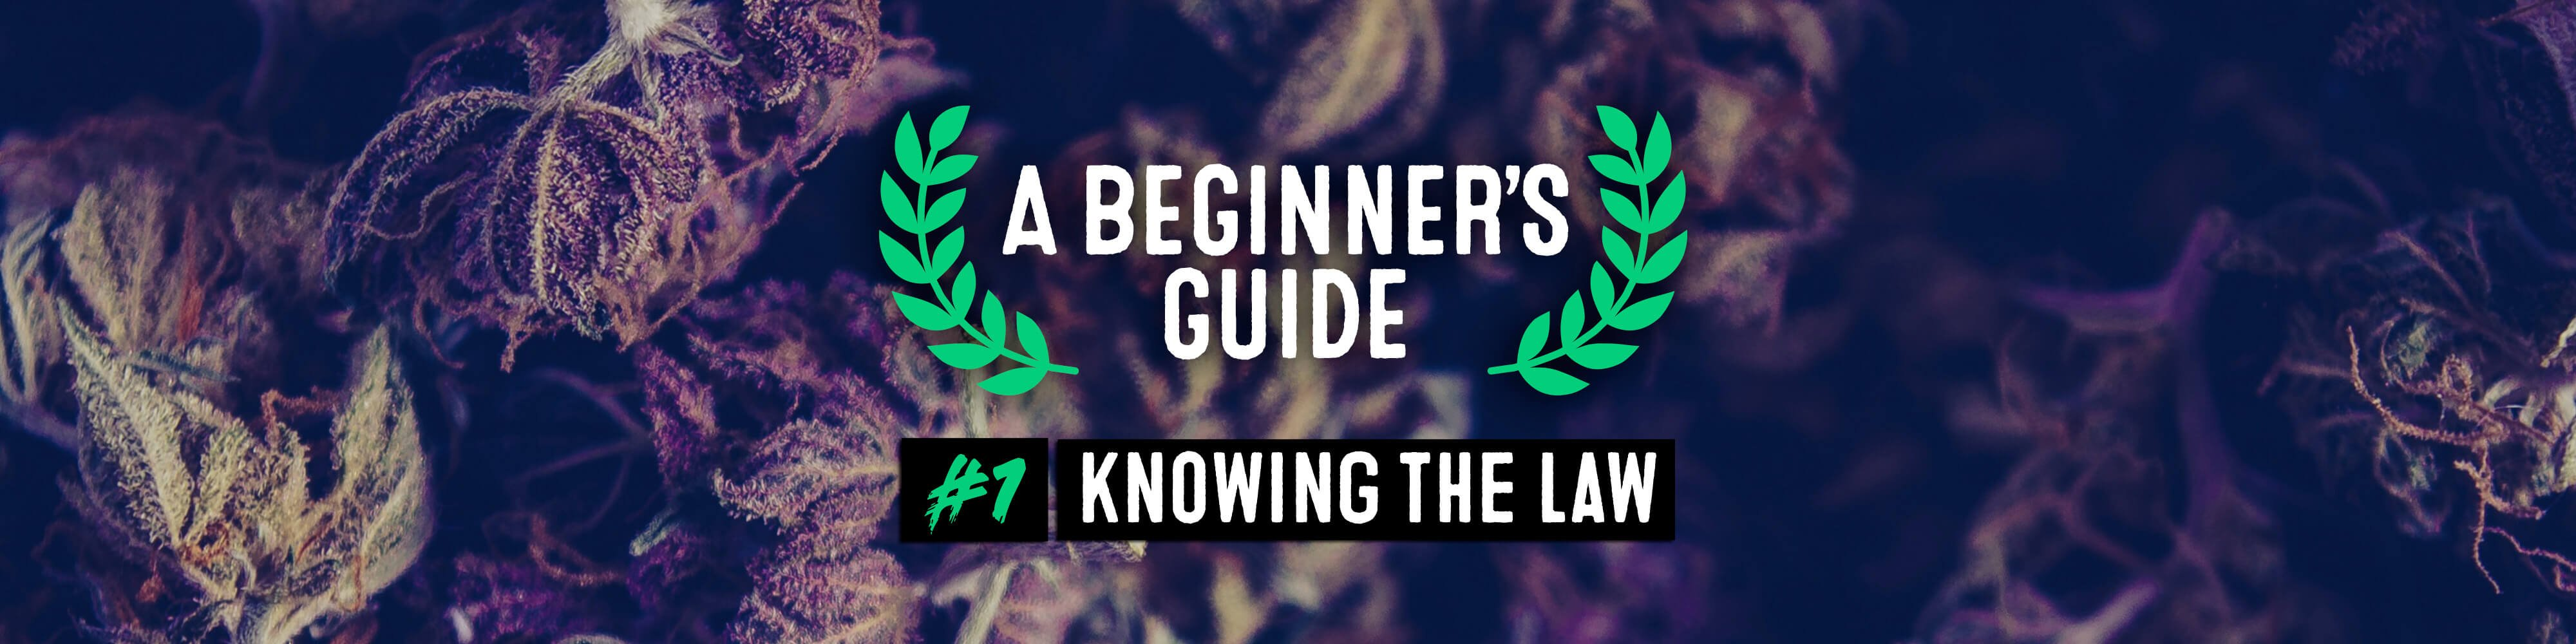 A BEGINNERS GUIDE. EPISODE 1: KNOWING THE LAW